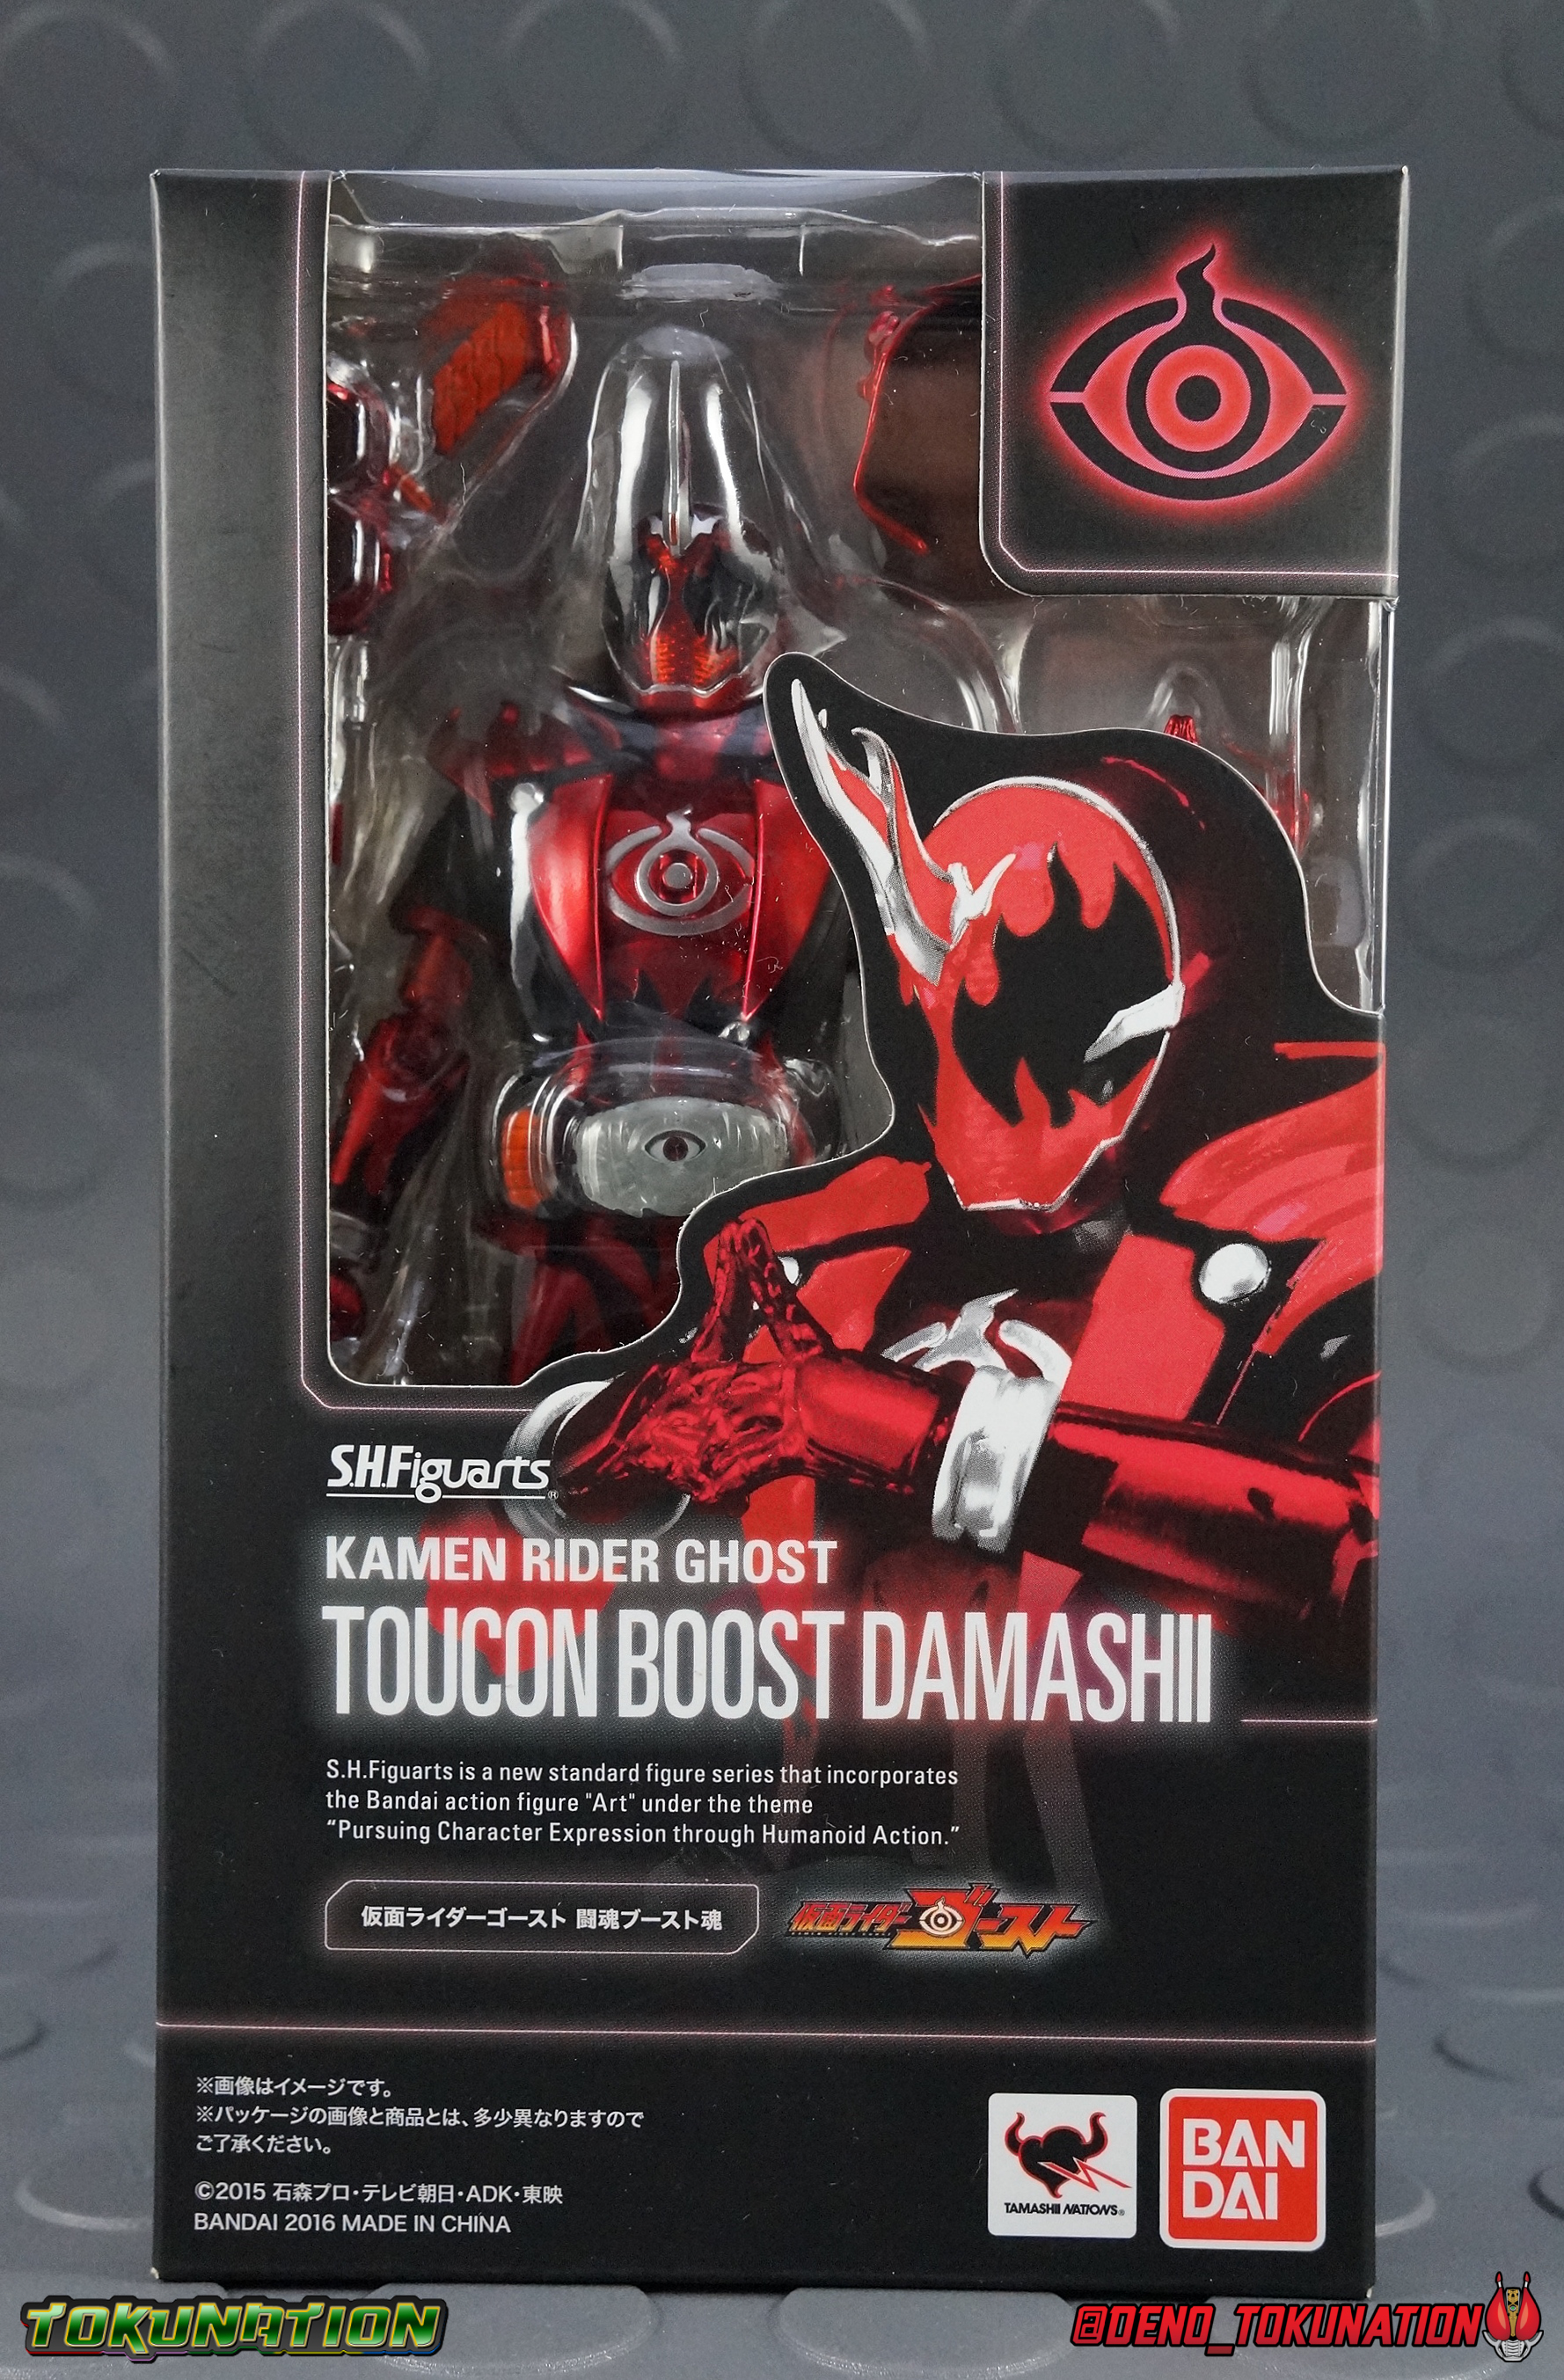 SH Figuarts Kamen Rider Ghost Toucon Boost Damashii 002